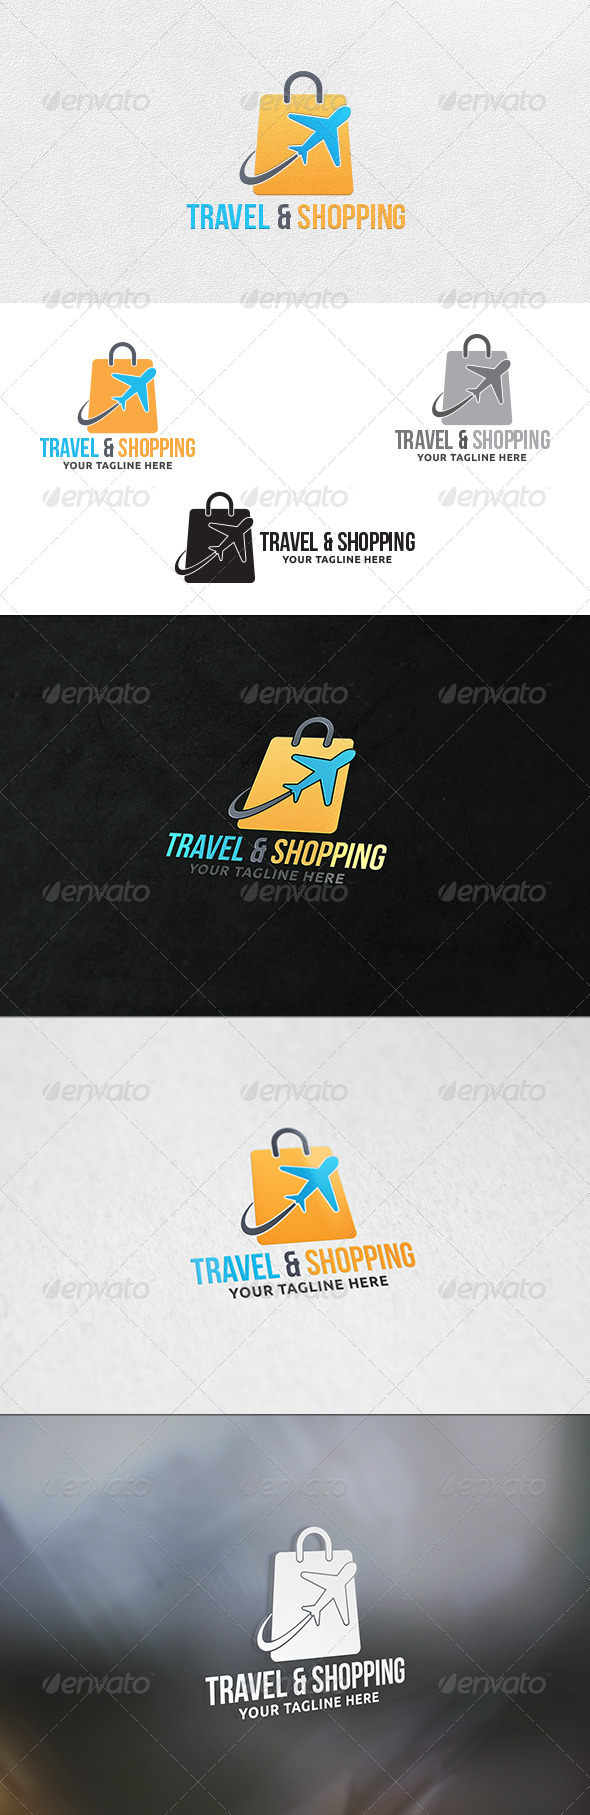 Travel and Shopping - Logo Template